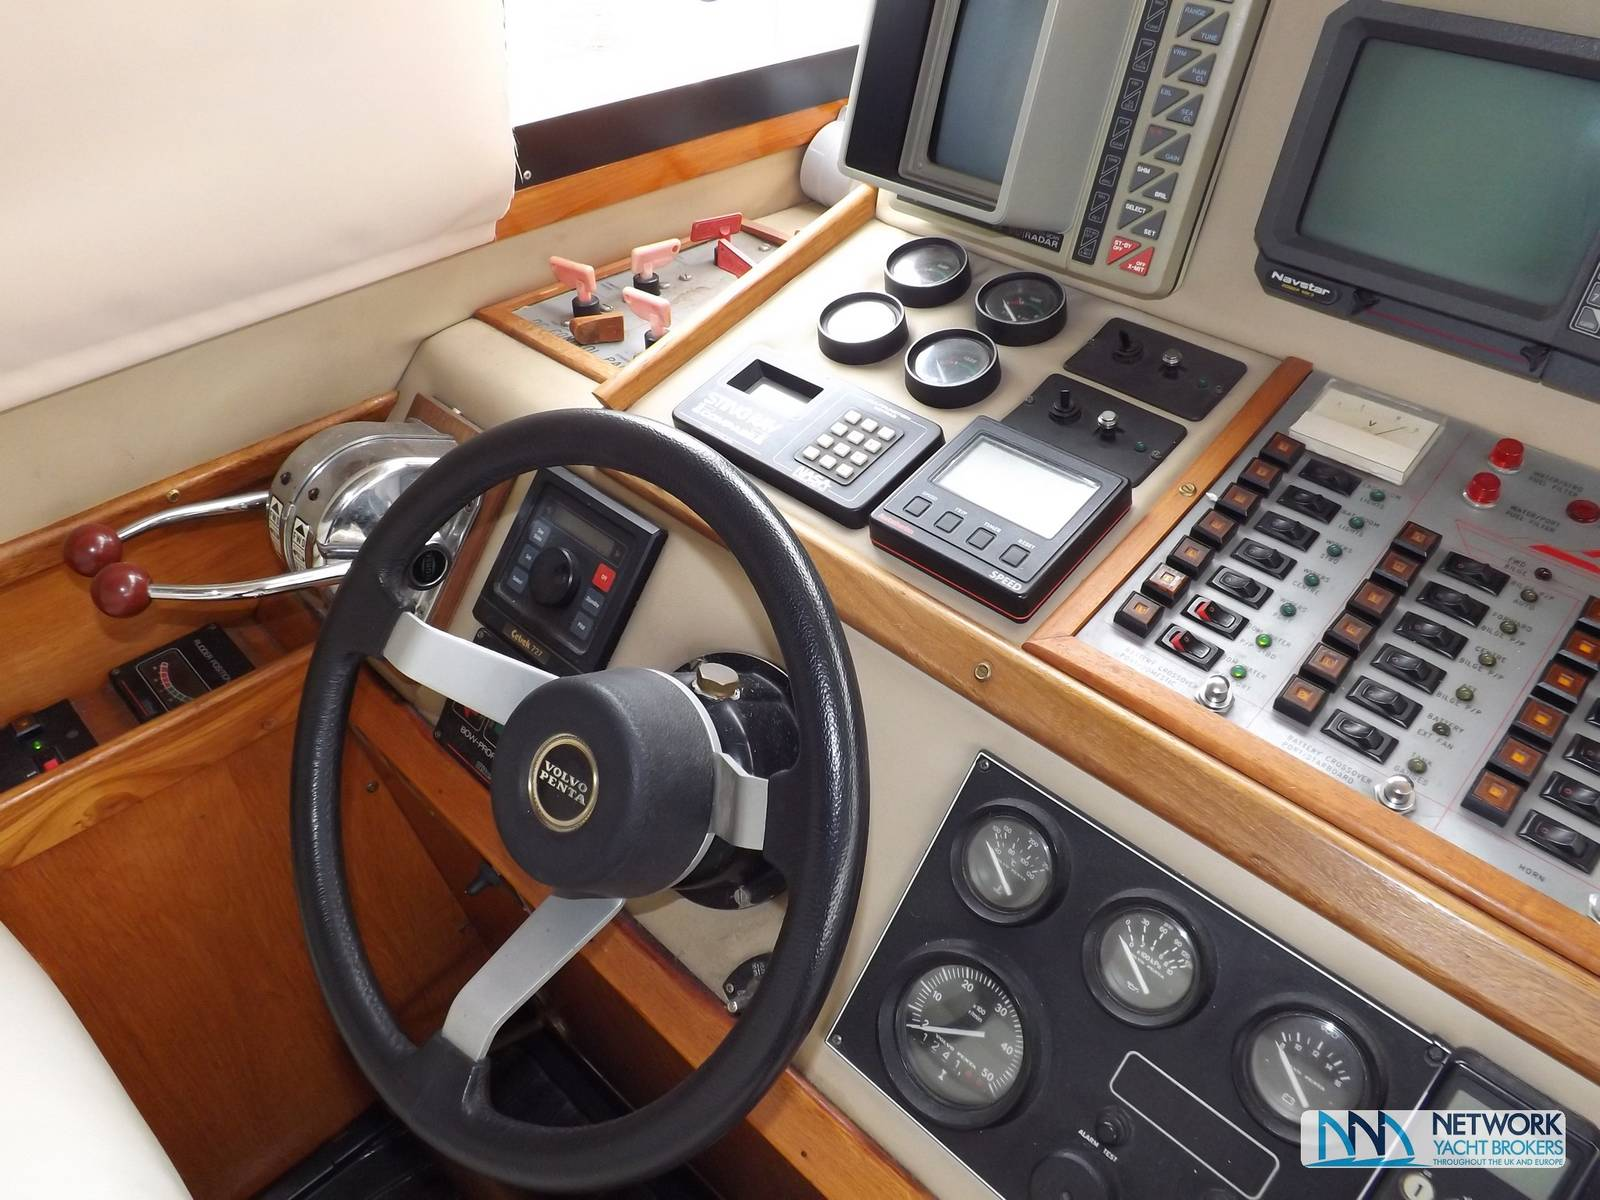 Colvic Sterling 35 - Network Yacht Brokers Milford Haven Pembrokeshire SA73 3AX 01646 278270 Yachts.co Milford Haven Pembrokeshire SA73 3AX 01646 278270Colvic Sterling 35 - Network Yacht Brokers Milford Haven Pembrokeshire SA73 3AX 01646 278270 Yachts.co Milford Haven Pembrokeshire SA73 3AX 01646 278270